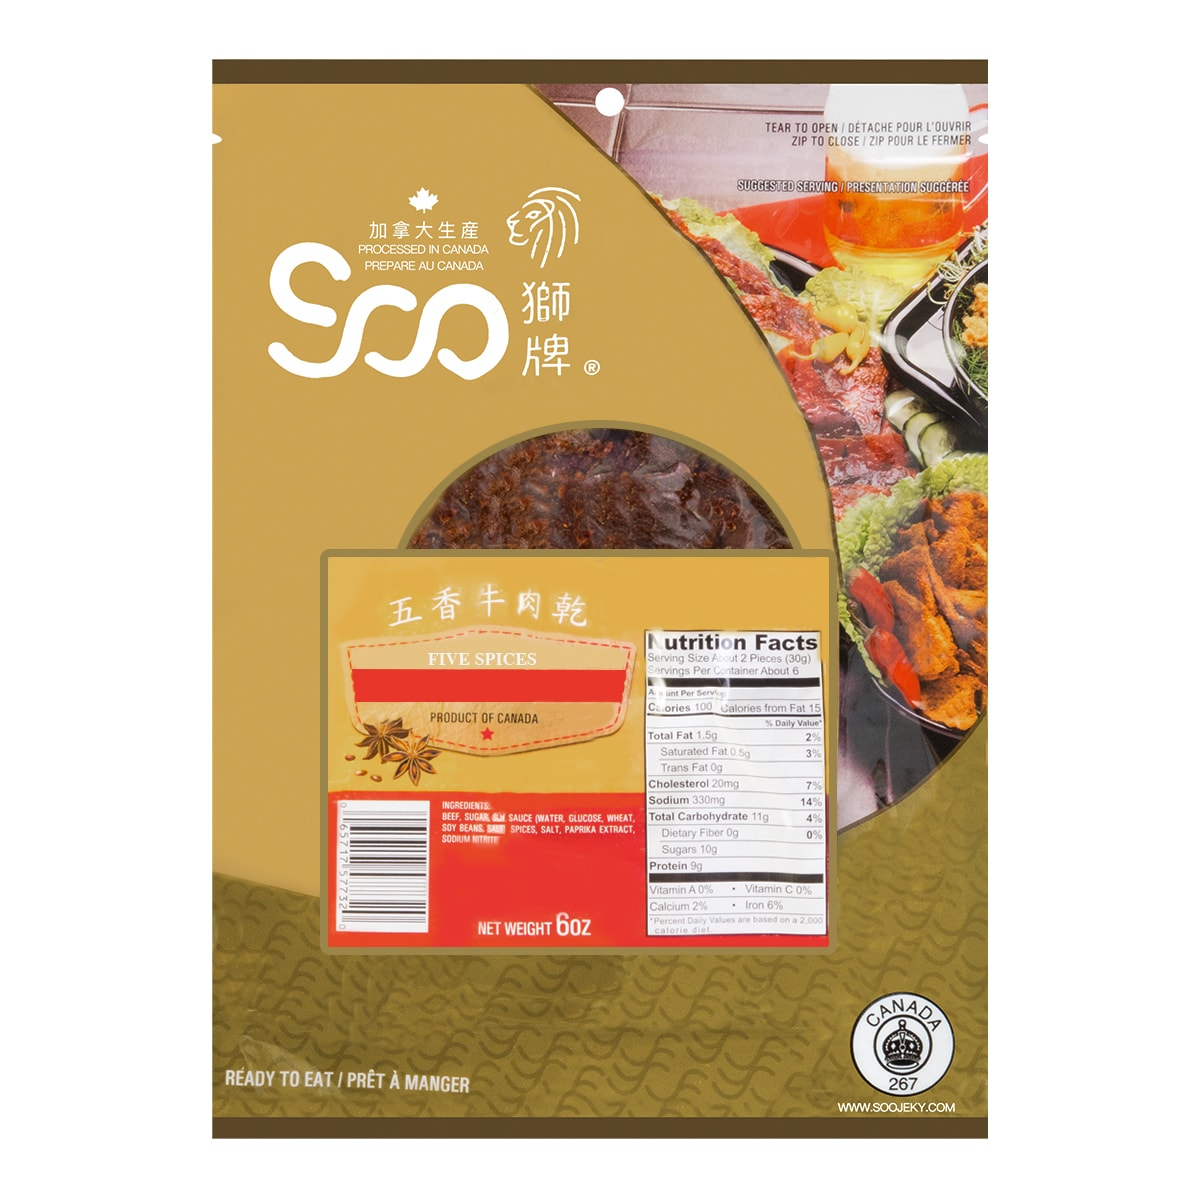 SOO CLASSIC STYLE BEEF JERKY FIVE SPICES FLAVOR 170g